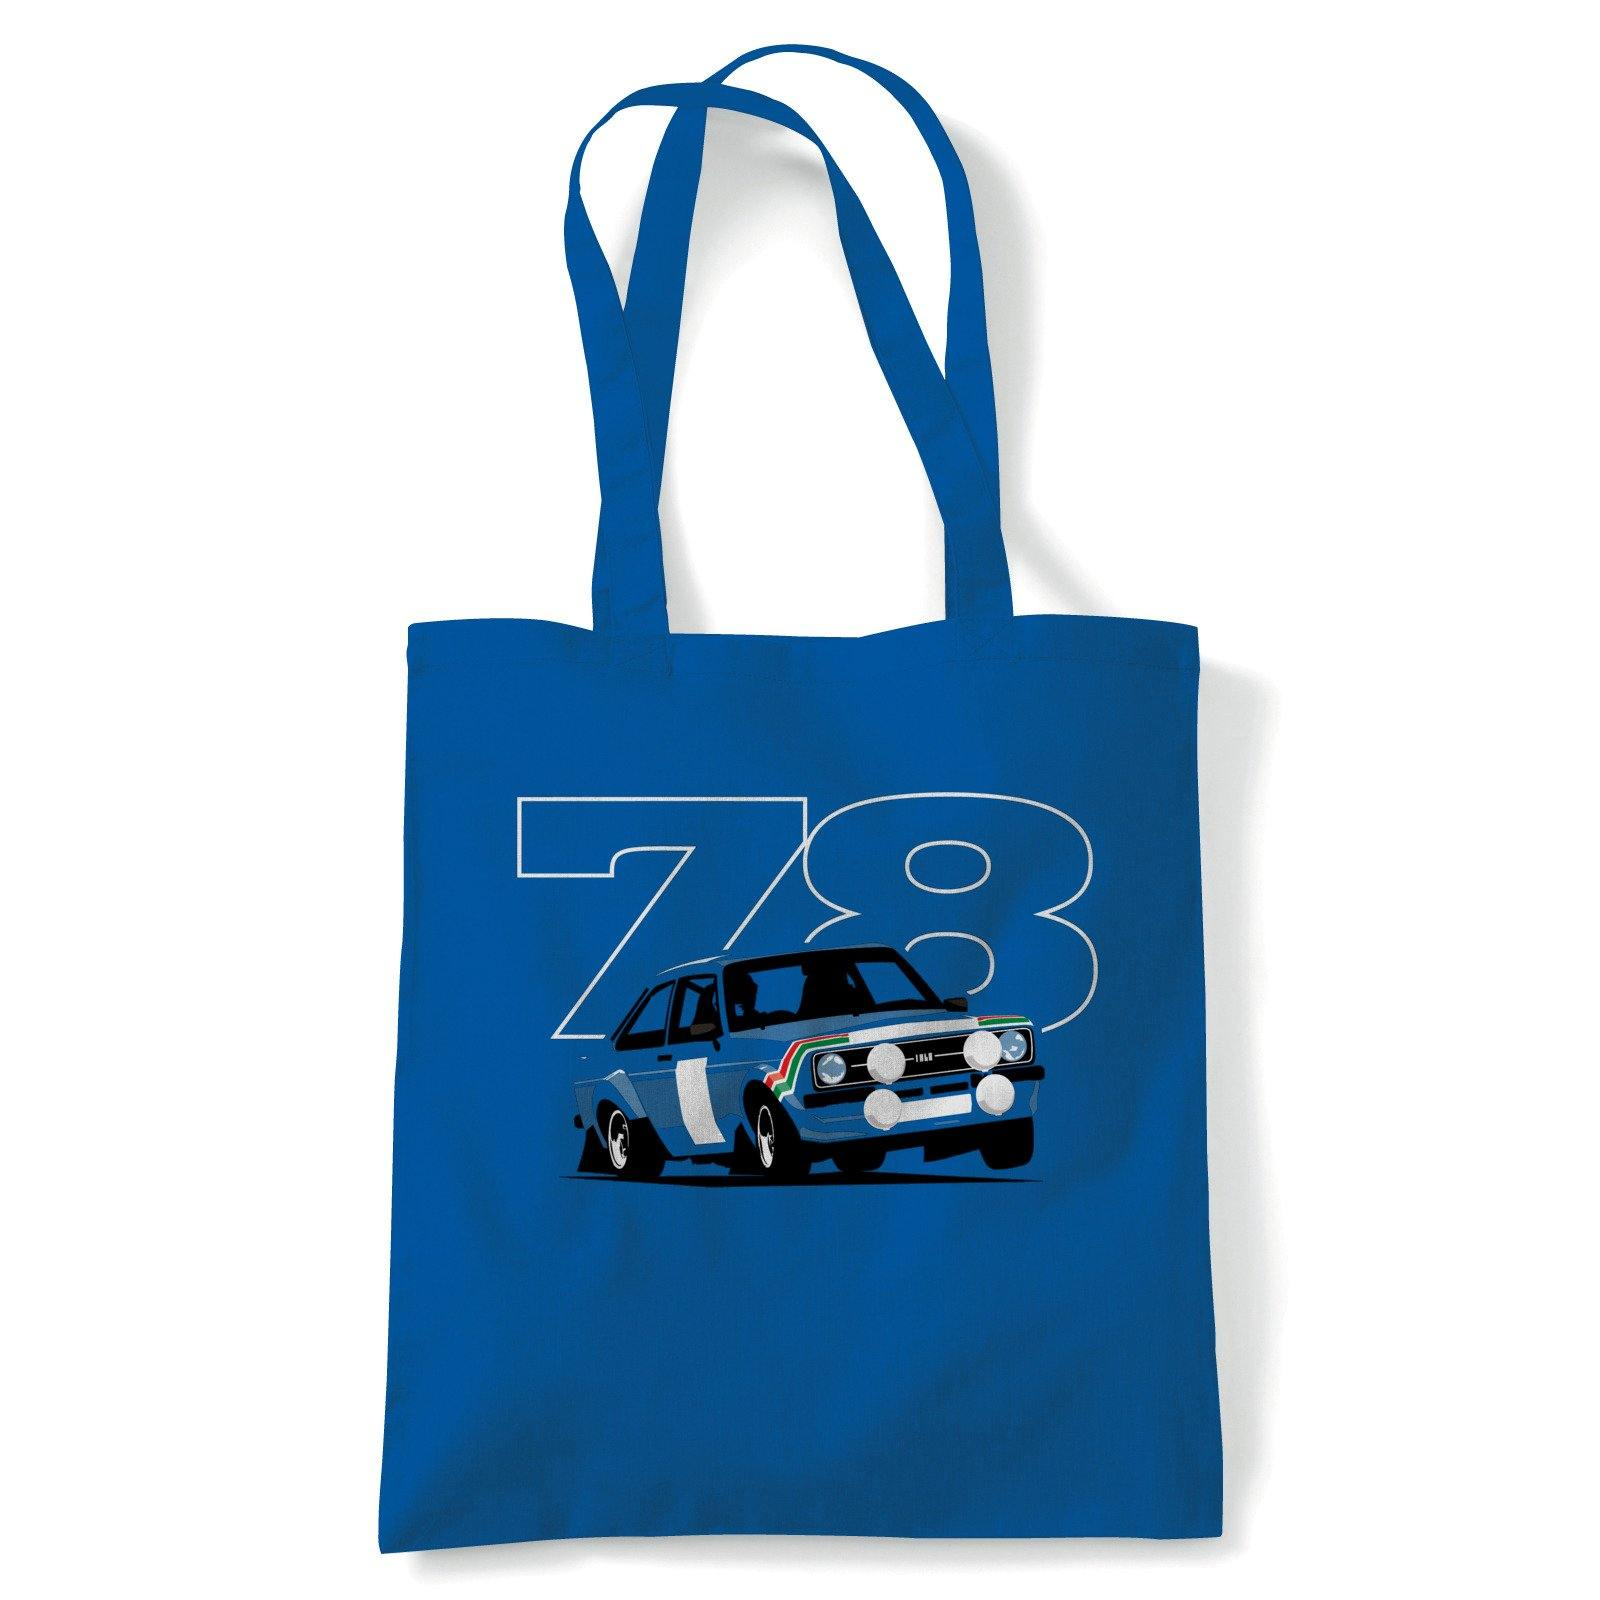 Escort Mk2 RS 1800 Rally Car Tote | GT Touring Metro Limited Drifting Classic Rally | Reusable Shopping Cotton Canvas Long Handled Natural Shopper Eco-Friendly Fashion